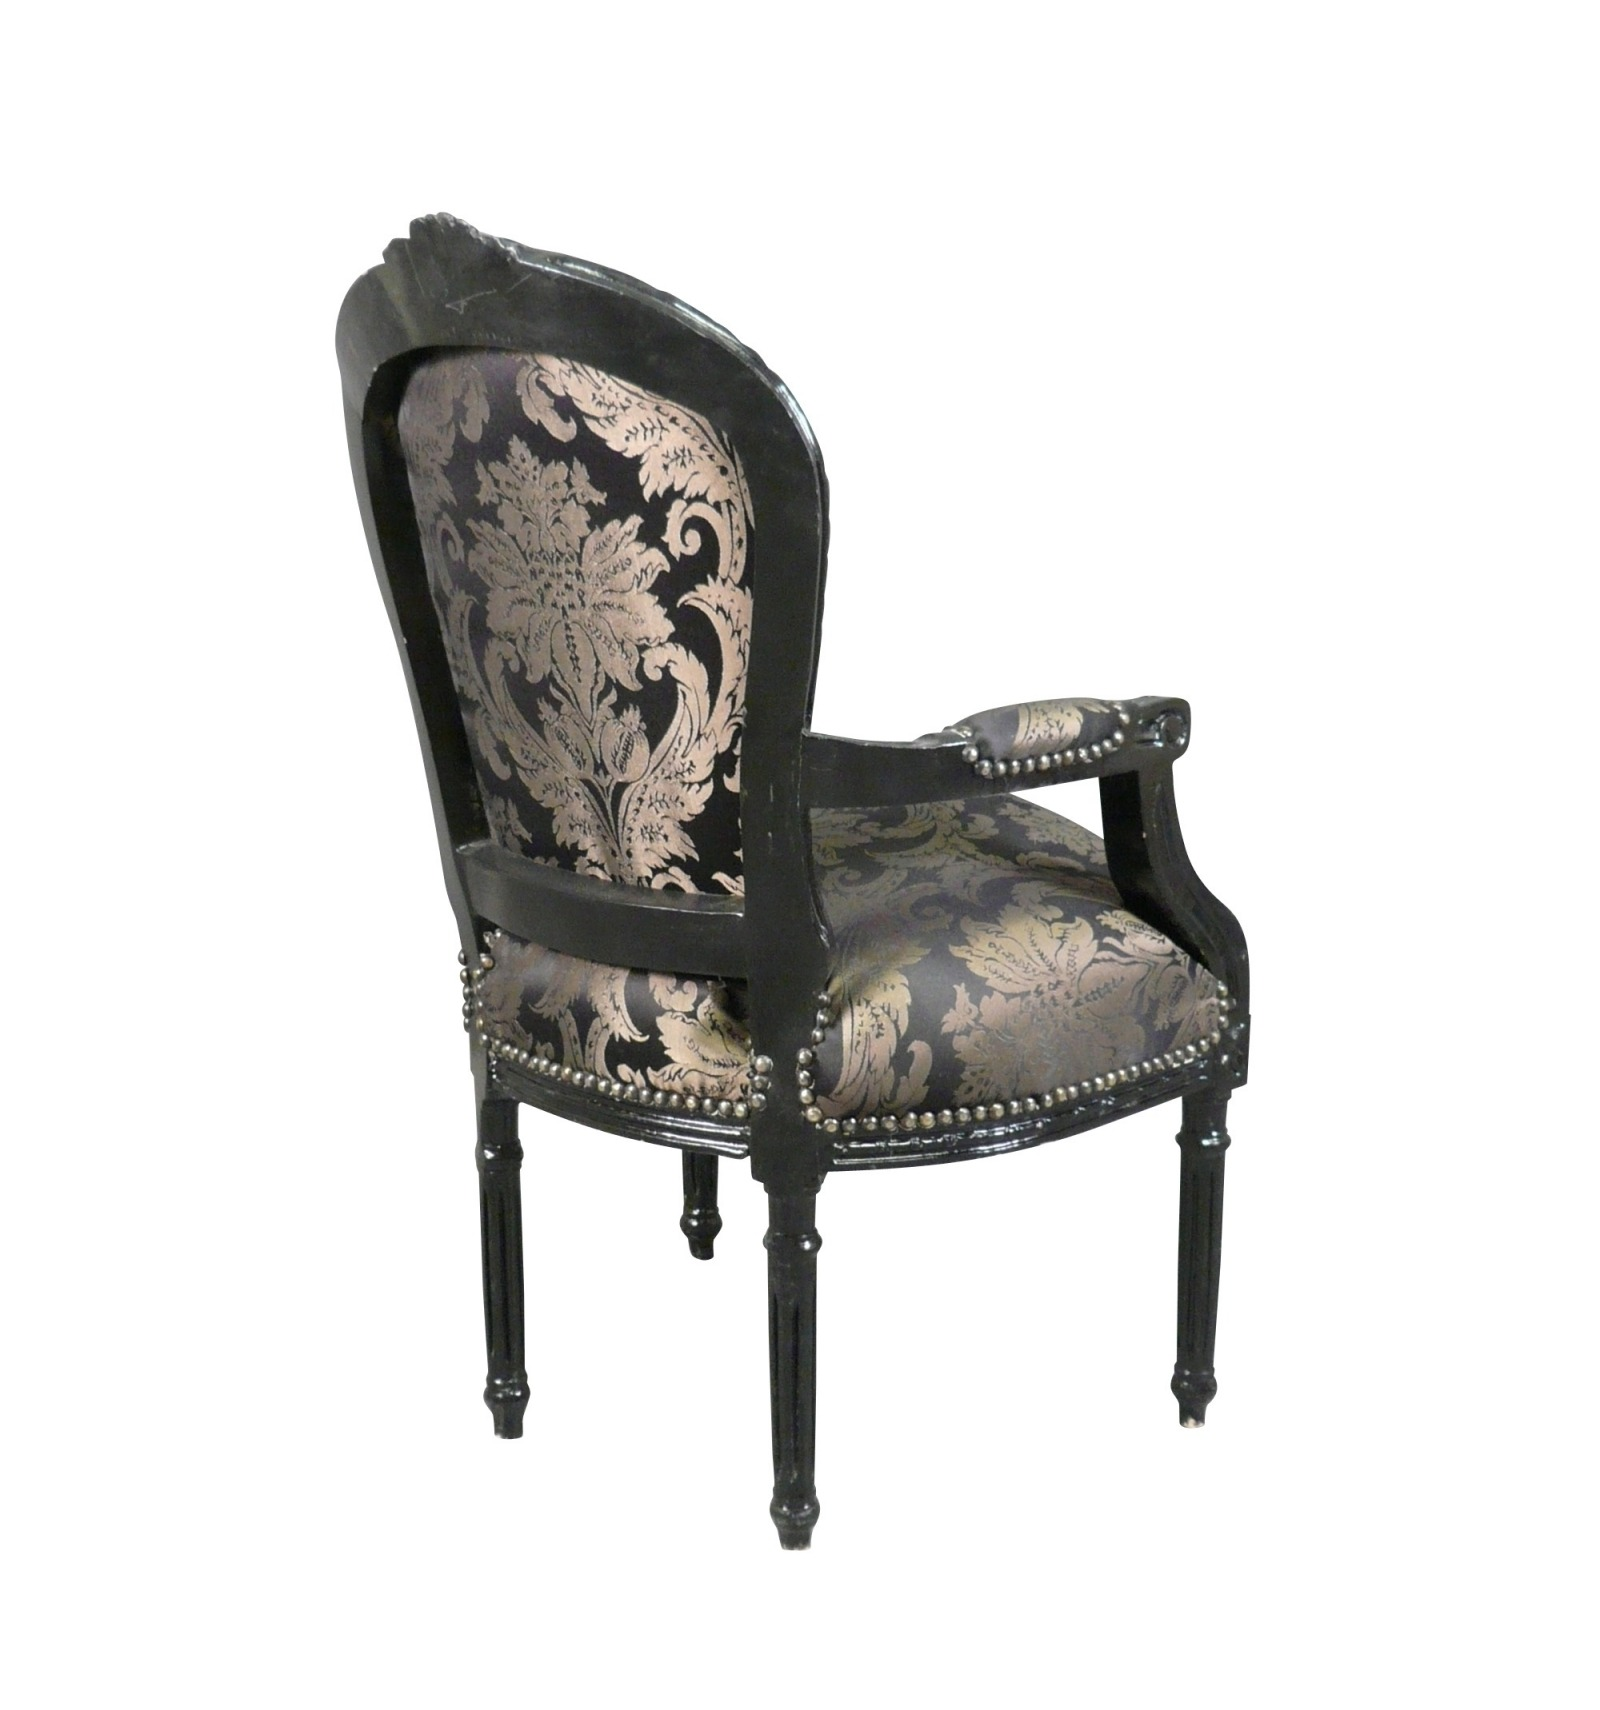 fauteuil louis xvi avec un tissu noir baroque. Black Bedroom Furniture Sets. Home Design Ideas